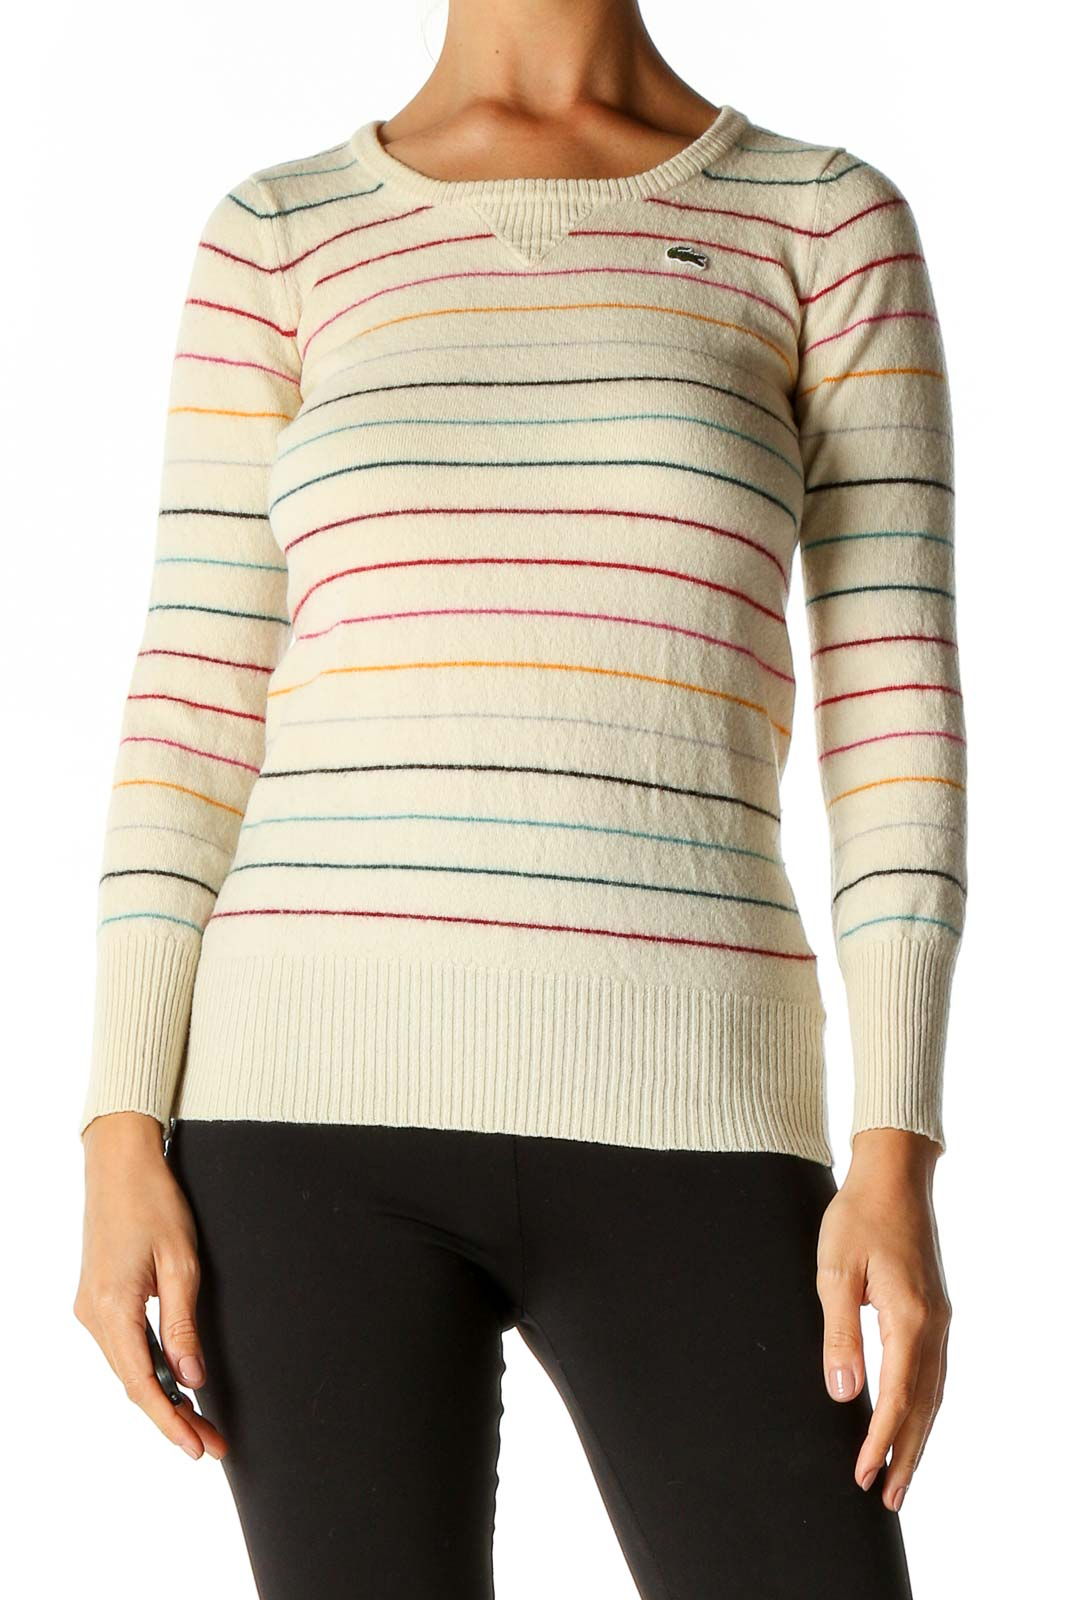 Beige Striped Classic Sweater Front